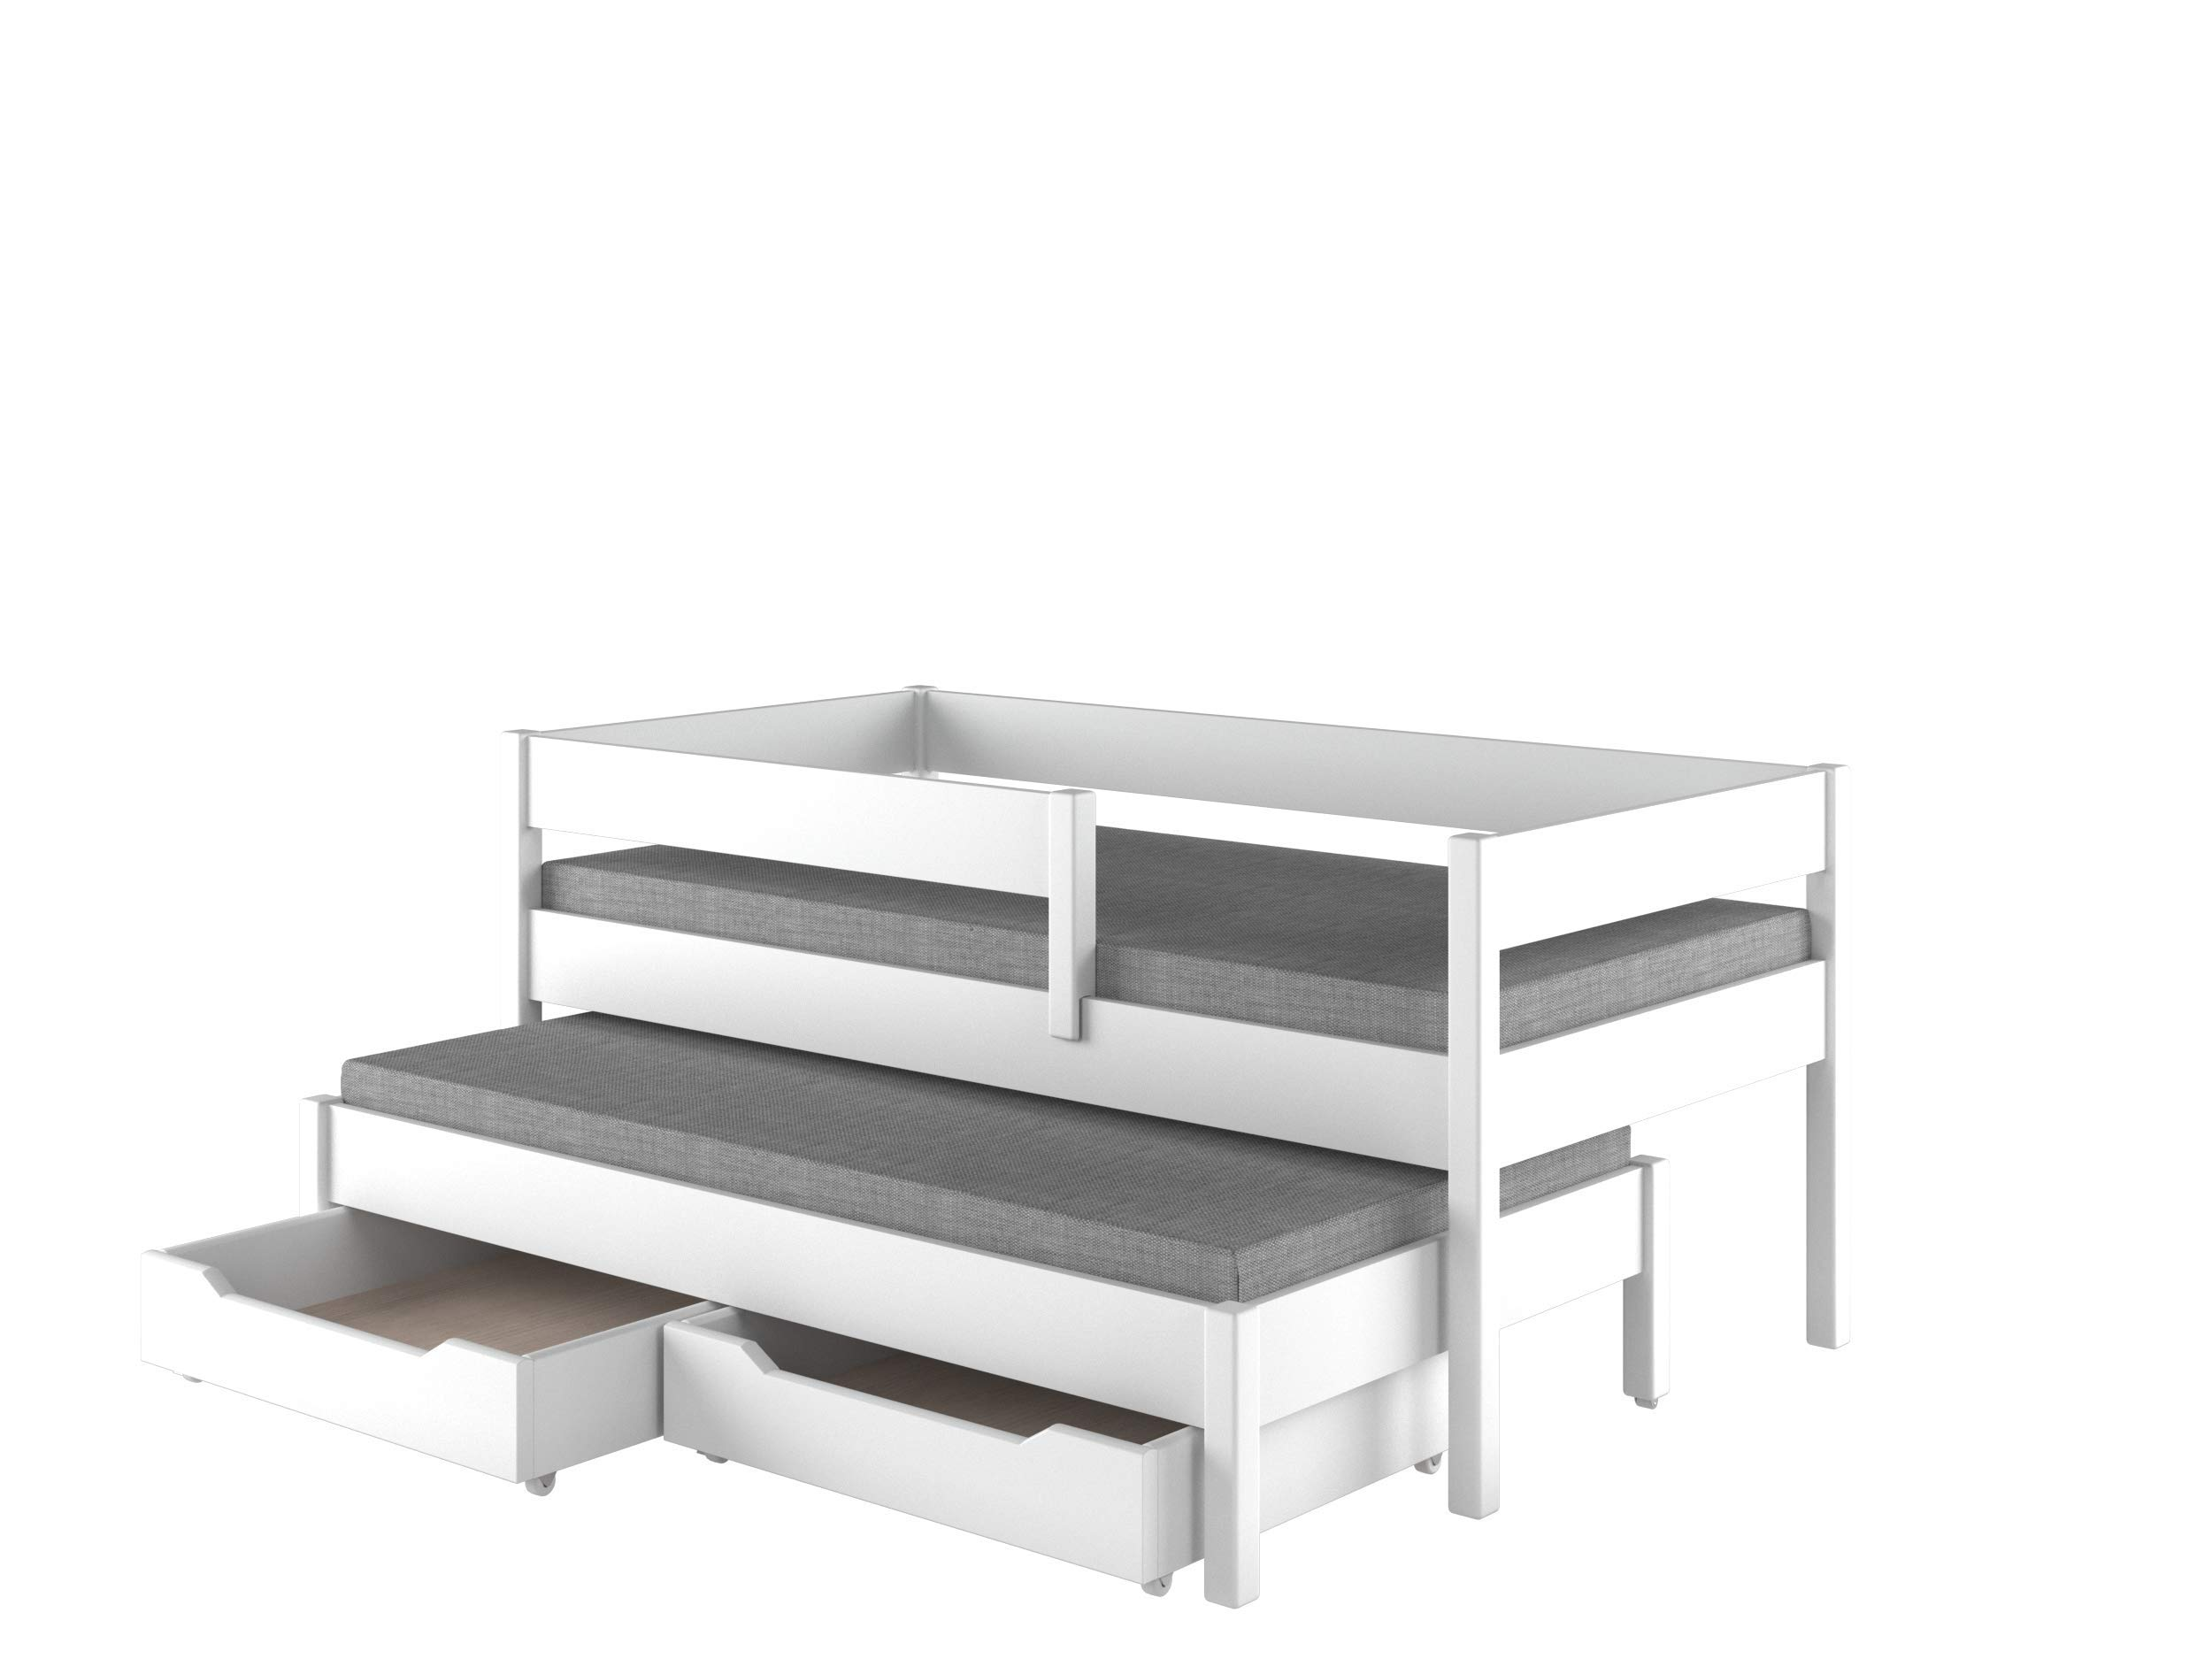 Children's Beds Home Trundle Bed For Kids Children Juniors with 2 Foam Mattresses and Drawers Included (200x90, White) Children's Beds Home Bed with Barriers Dimensions - Internal 140x70, 160x80, 180x80, 180x90, 200x90 (External: 147x77, 167x87, 187x87, 187x97, 207x97) Lower Bed Dimensions - Internal: 130x70, 150x80, 170x80, 170x90, 190x90 (External: 137x77, 157x87, 177x87, 177x97, 197x97) Universal bed entrance - right or left side, front barrier can be removed at later stage. Bed frame with load capacity of 150 kg, Fittings + installation instructions 1